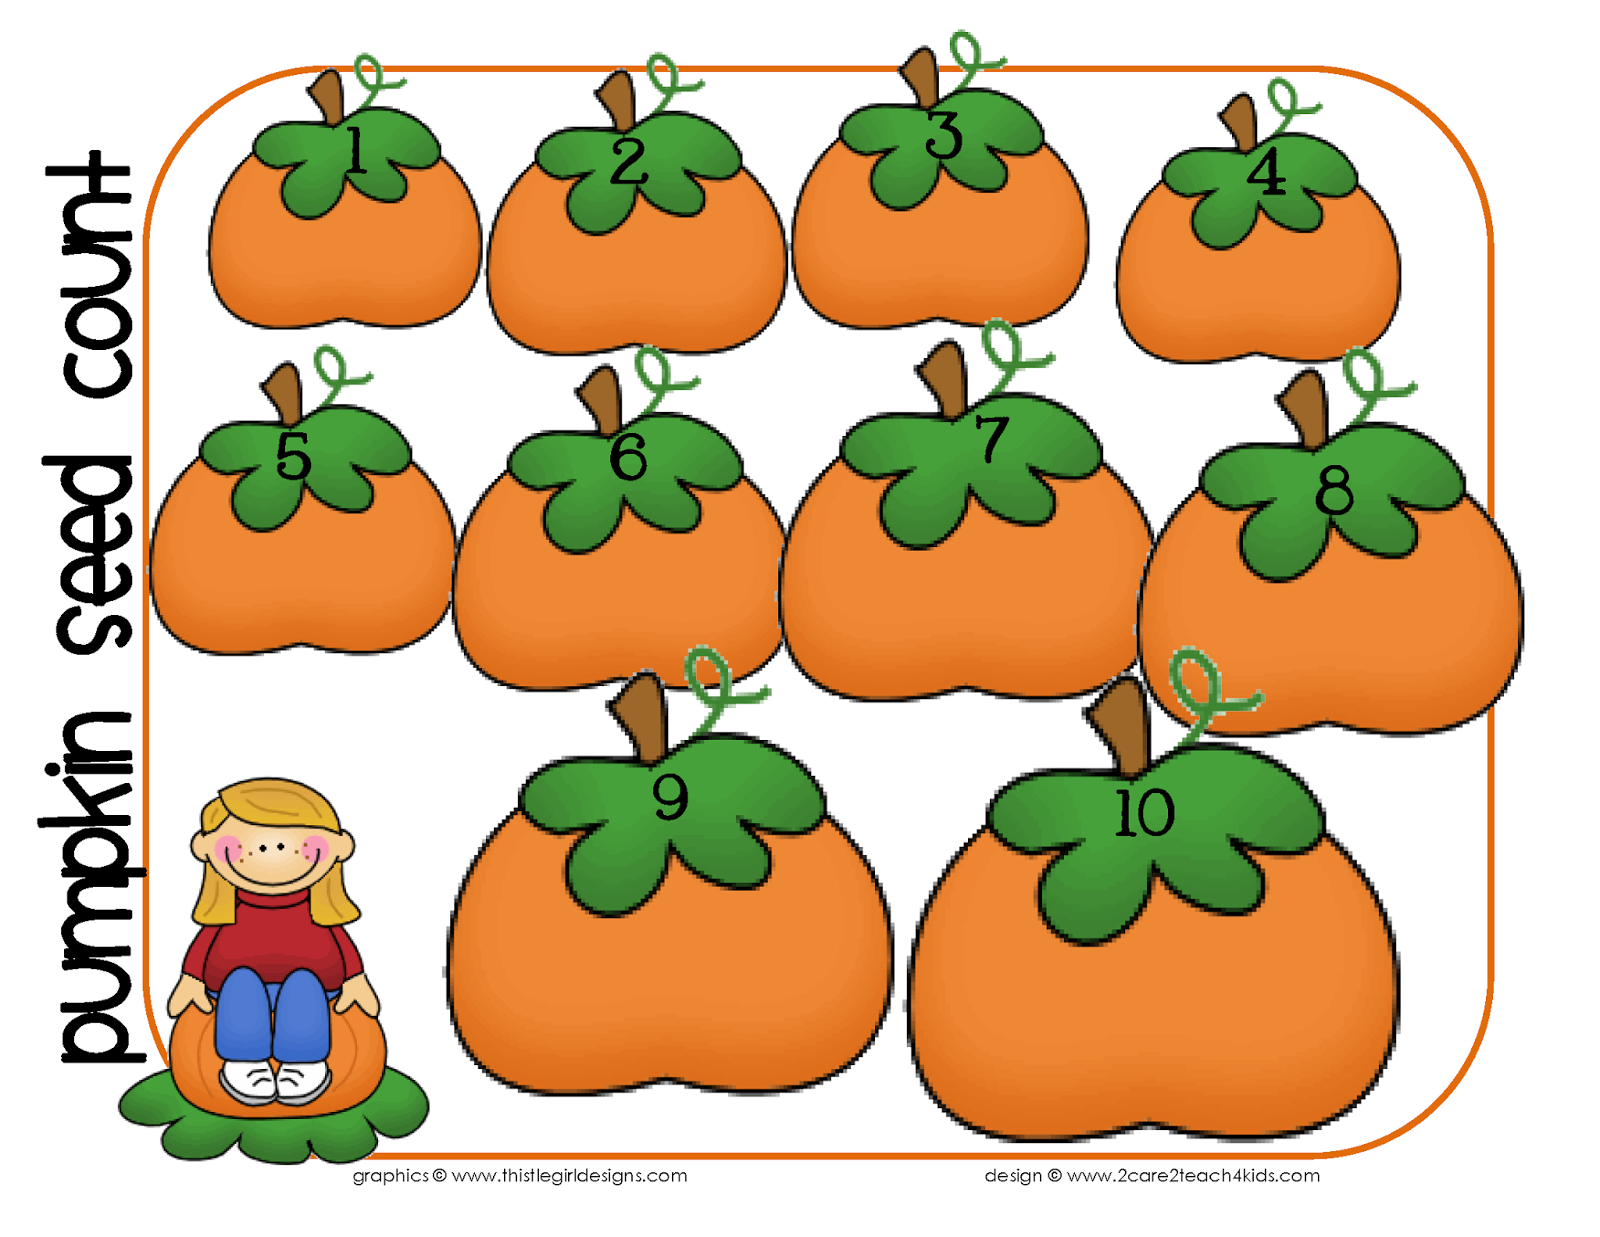 2care2teach4kids pumpkin picking time a patch of free printable activity pages. Black Bedroom Furniture Sets. Home Design Ideas